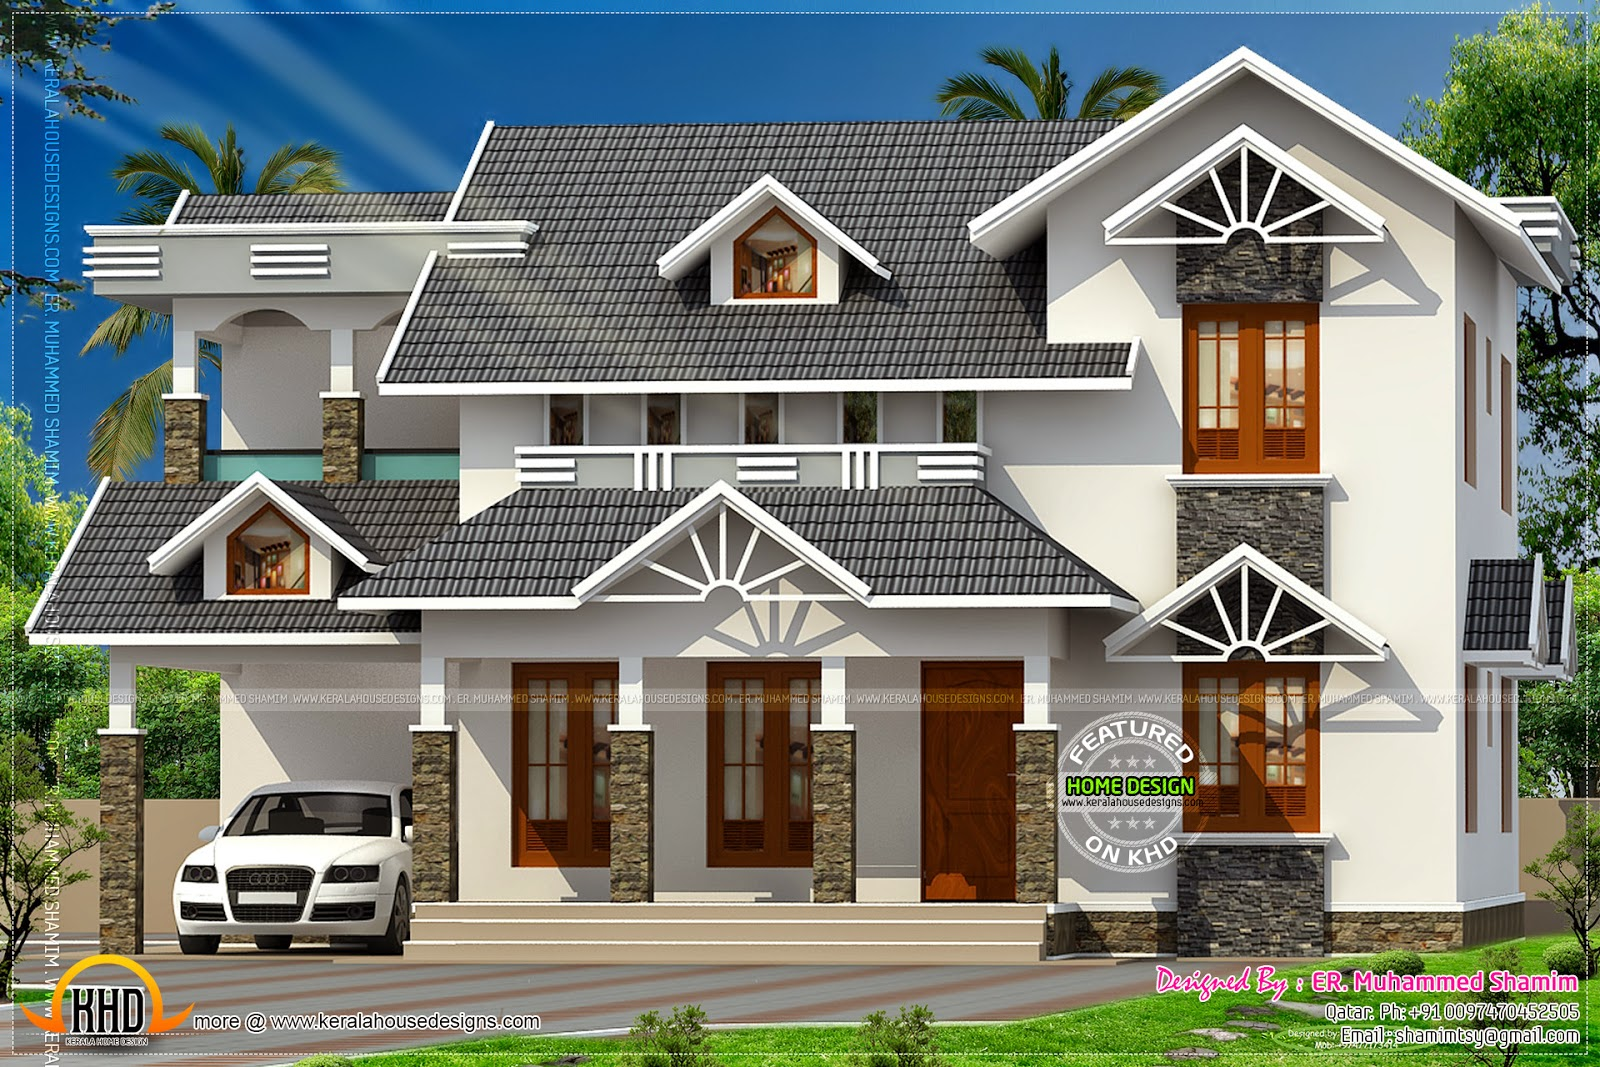 Nice sloped roof kerala home design kerala home design for Kerala house designs and plans